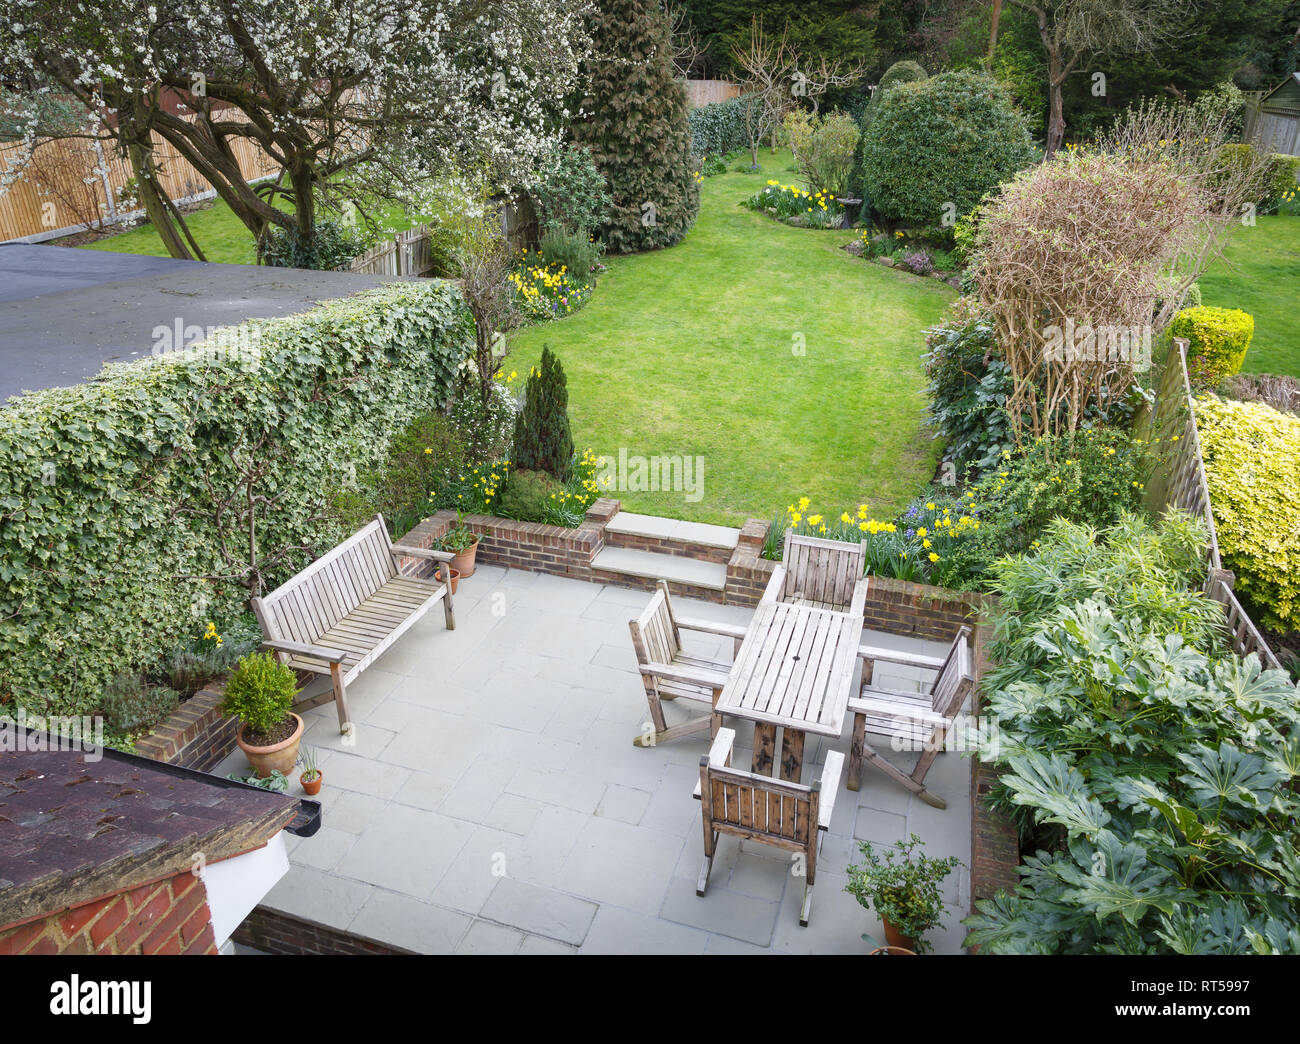 Backyard Back Garden Suburban High Resolution Stock Photography